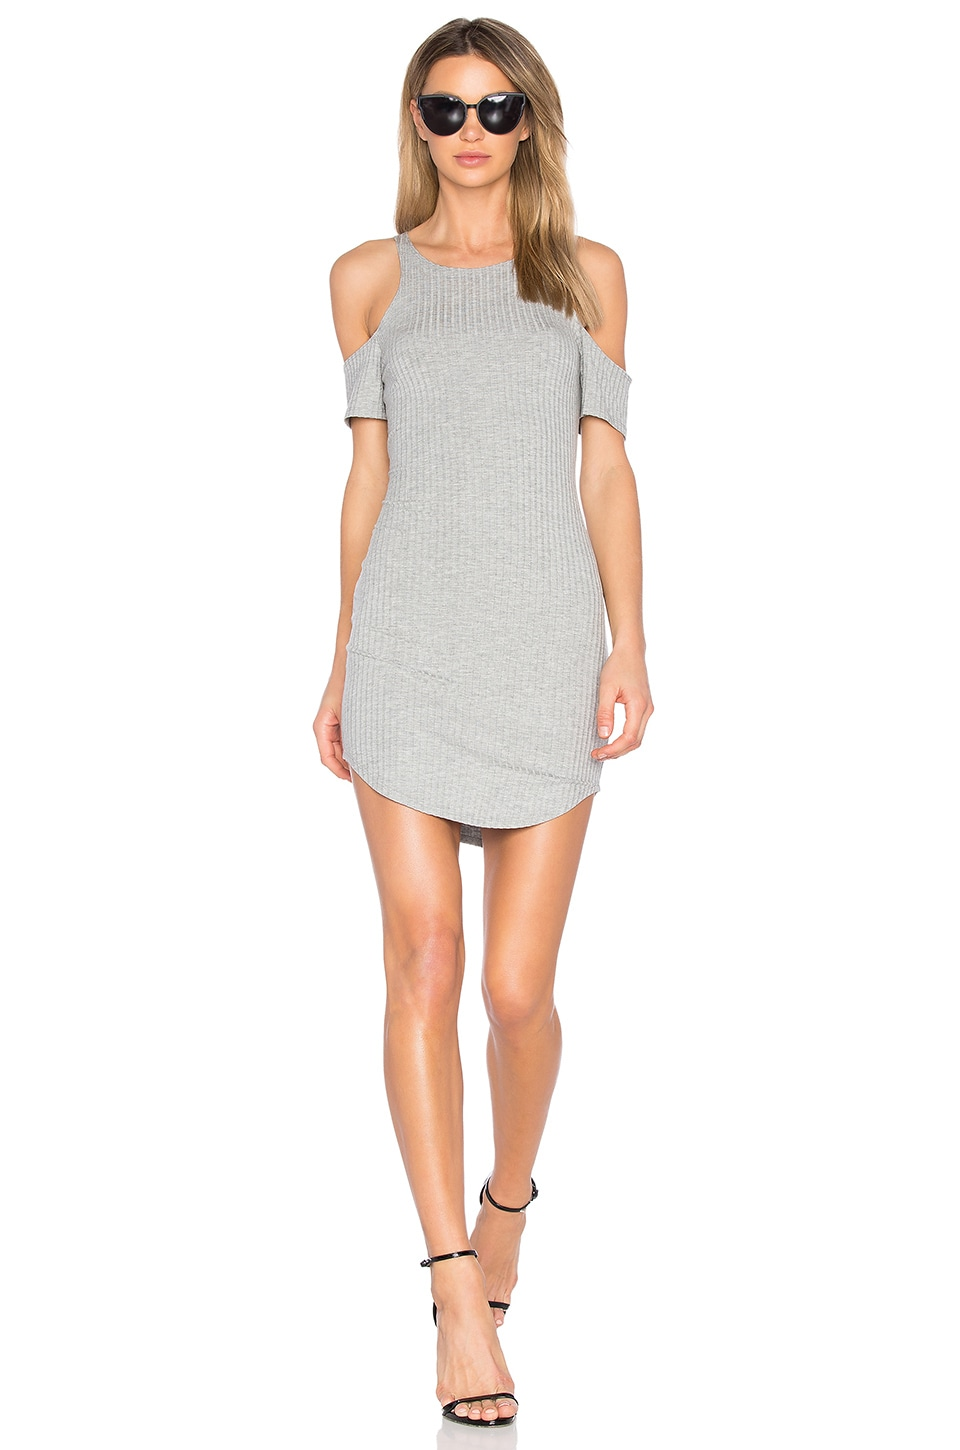 LNA Lea Dress in Marengo